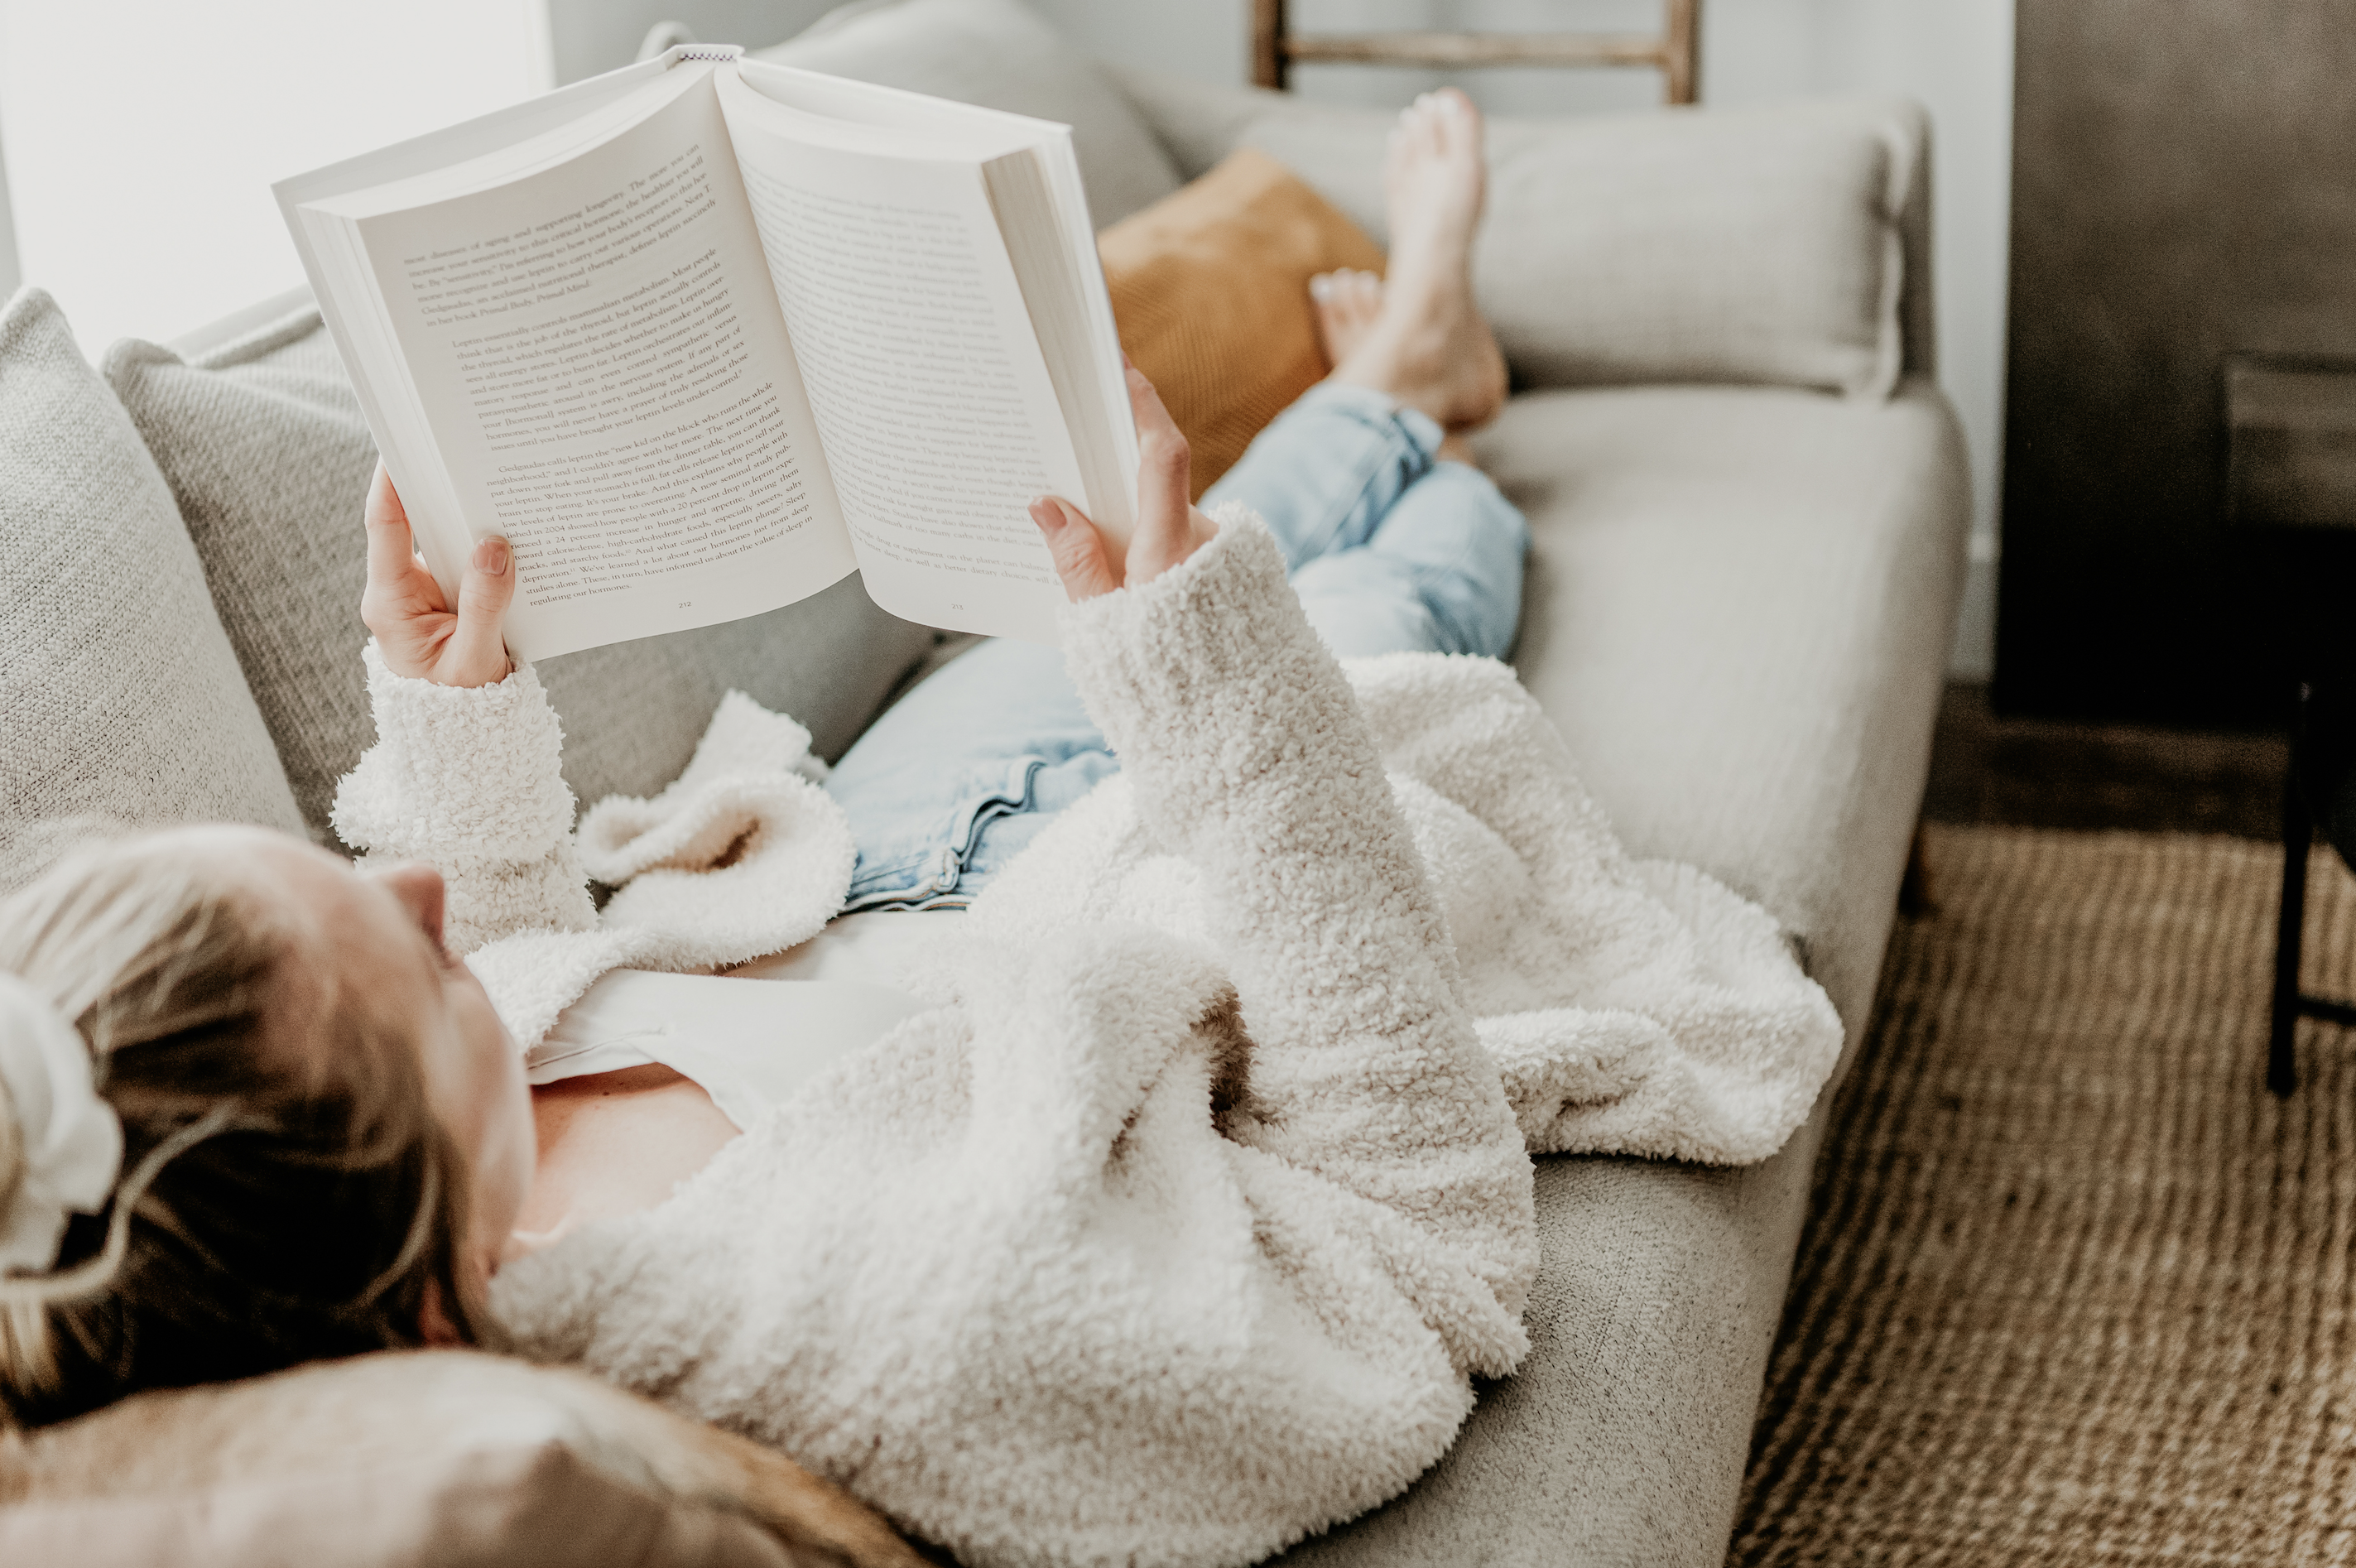 If you find yourself wandering around aimlessly during the coronavirus pandemic, this article offers a list of things you can do while you're stuck at home so you can still thrive.